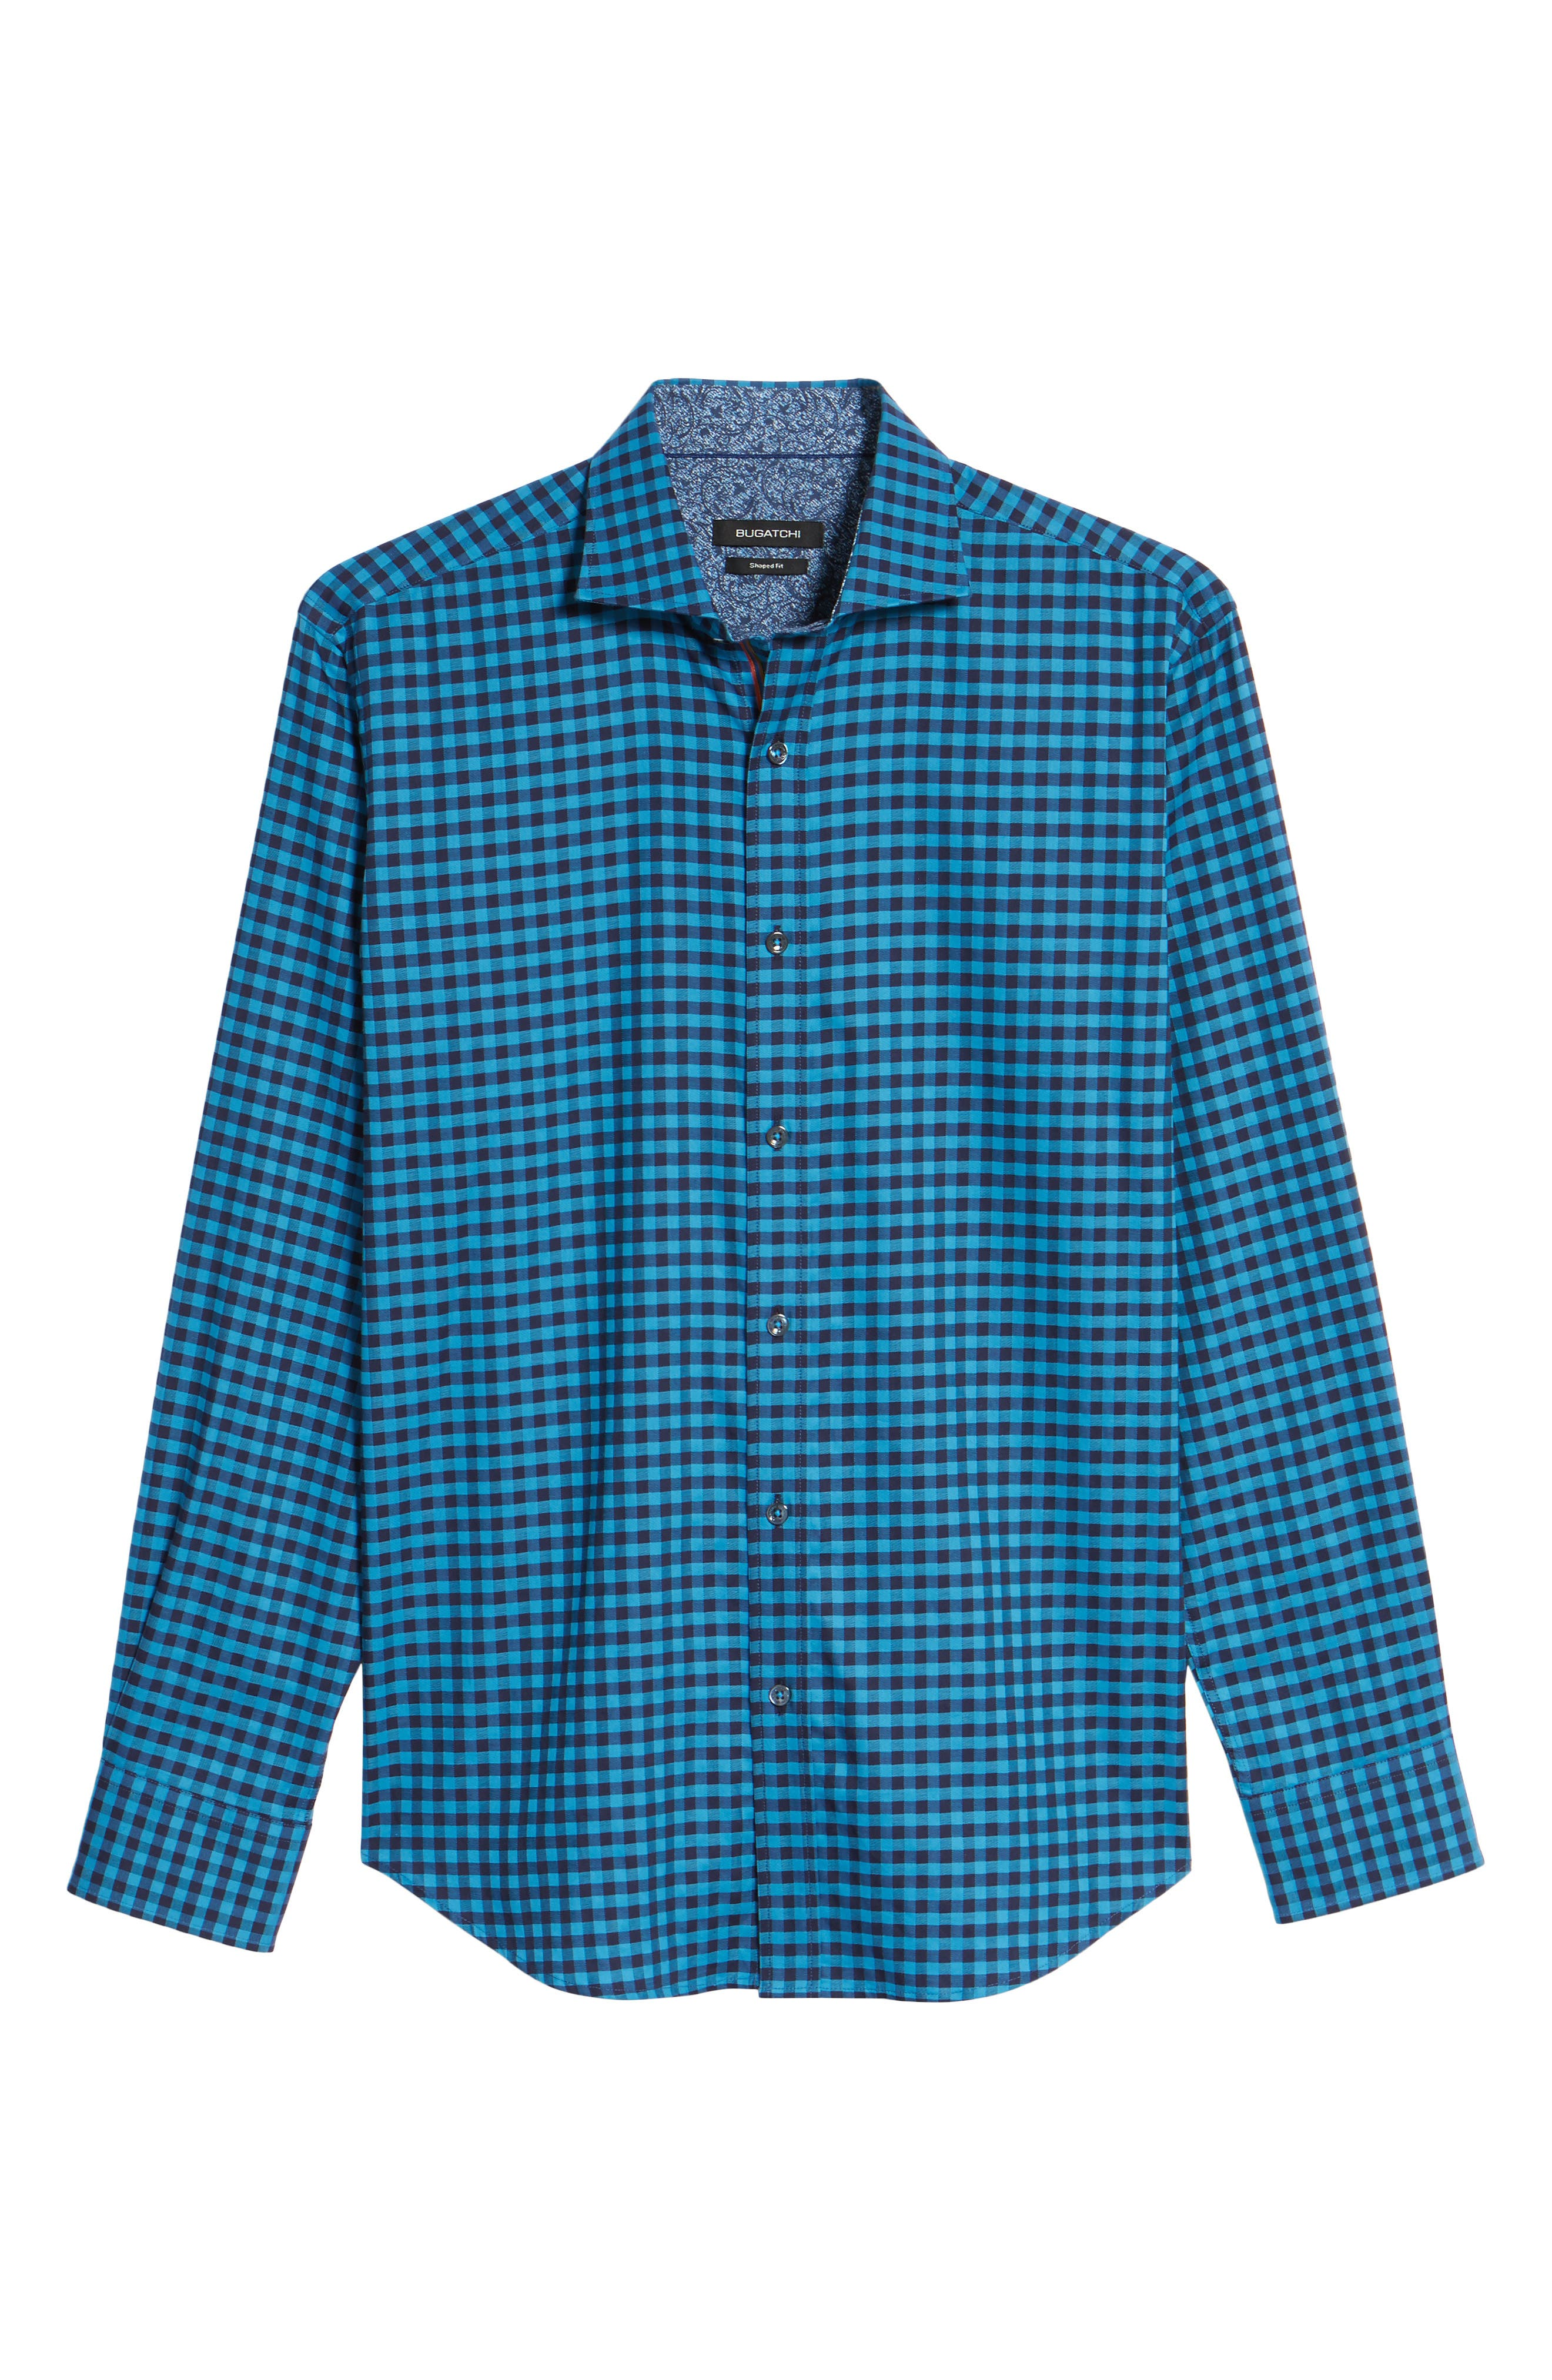 Shaped Fit Check Sport Shirt,                             Alternate thumbnail 6, color,                             Teal